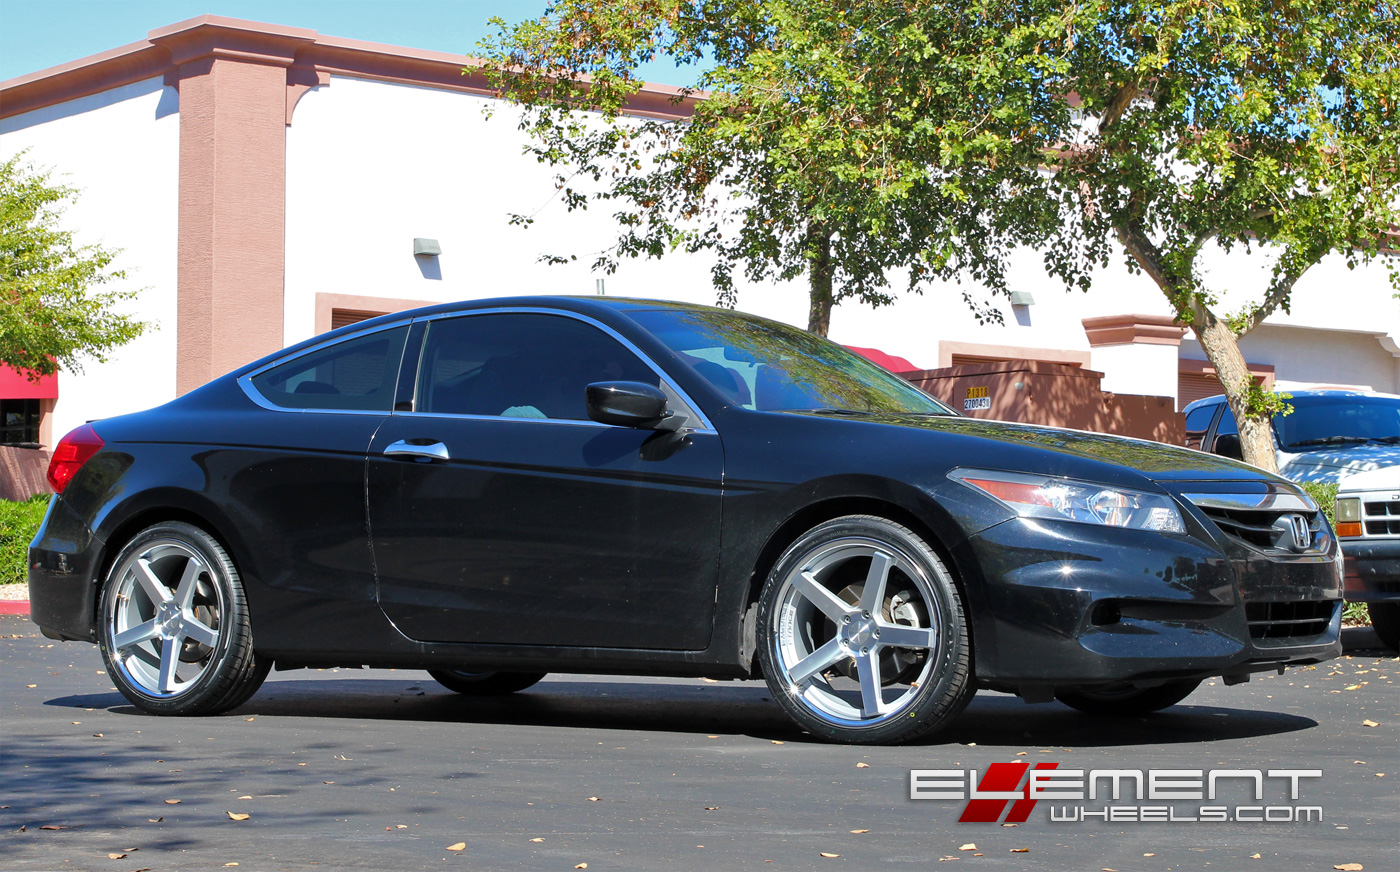 Stance SC5 Silver/Machined Wheels On 2014 Honda Accord Coupe W/ Specs |  Element Wheels